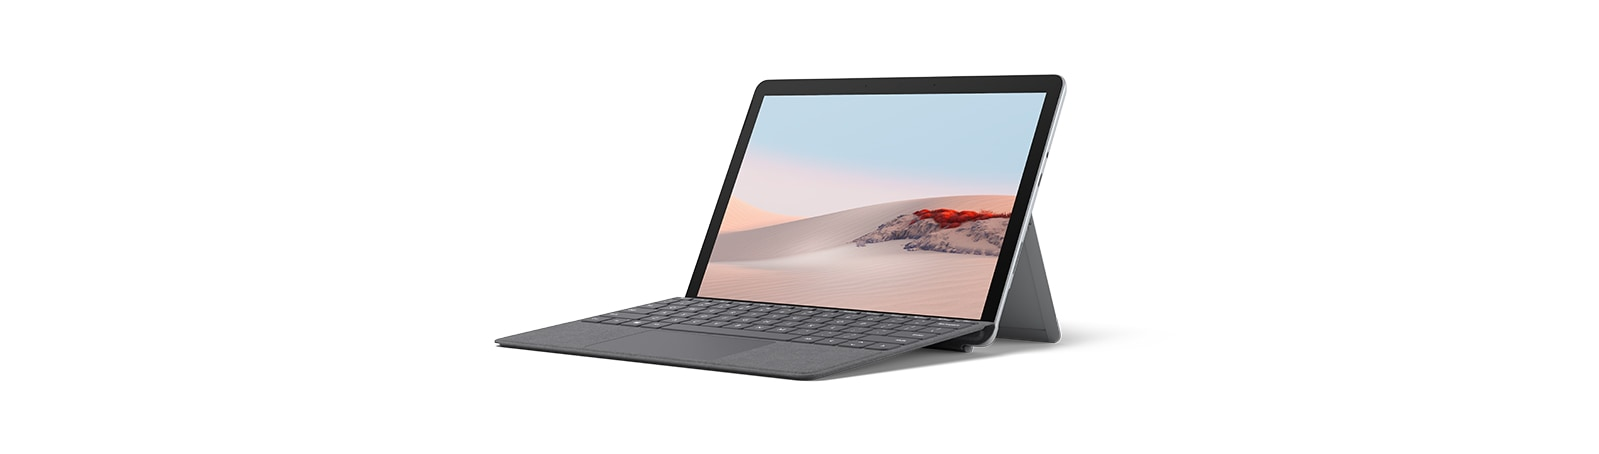 Surface Go 2 for Business with Type Cover attached